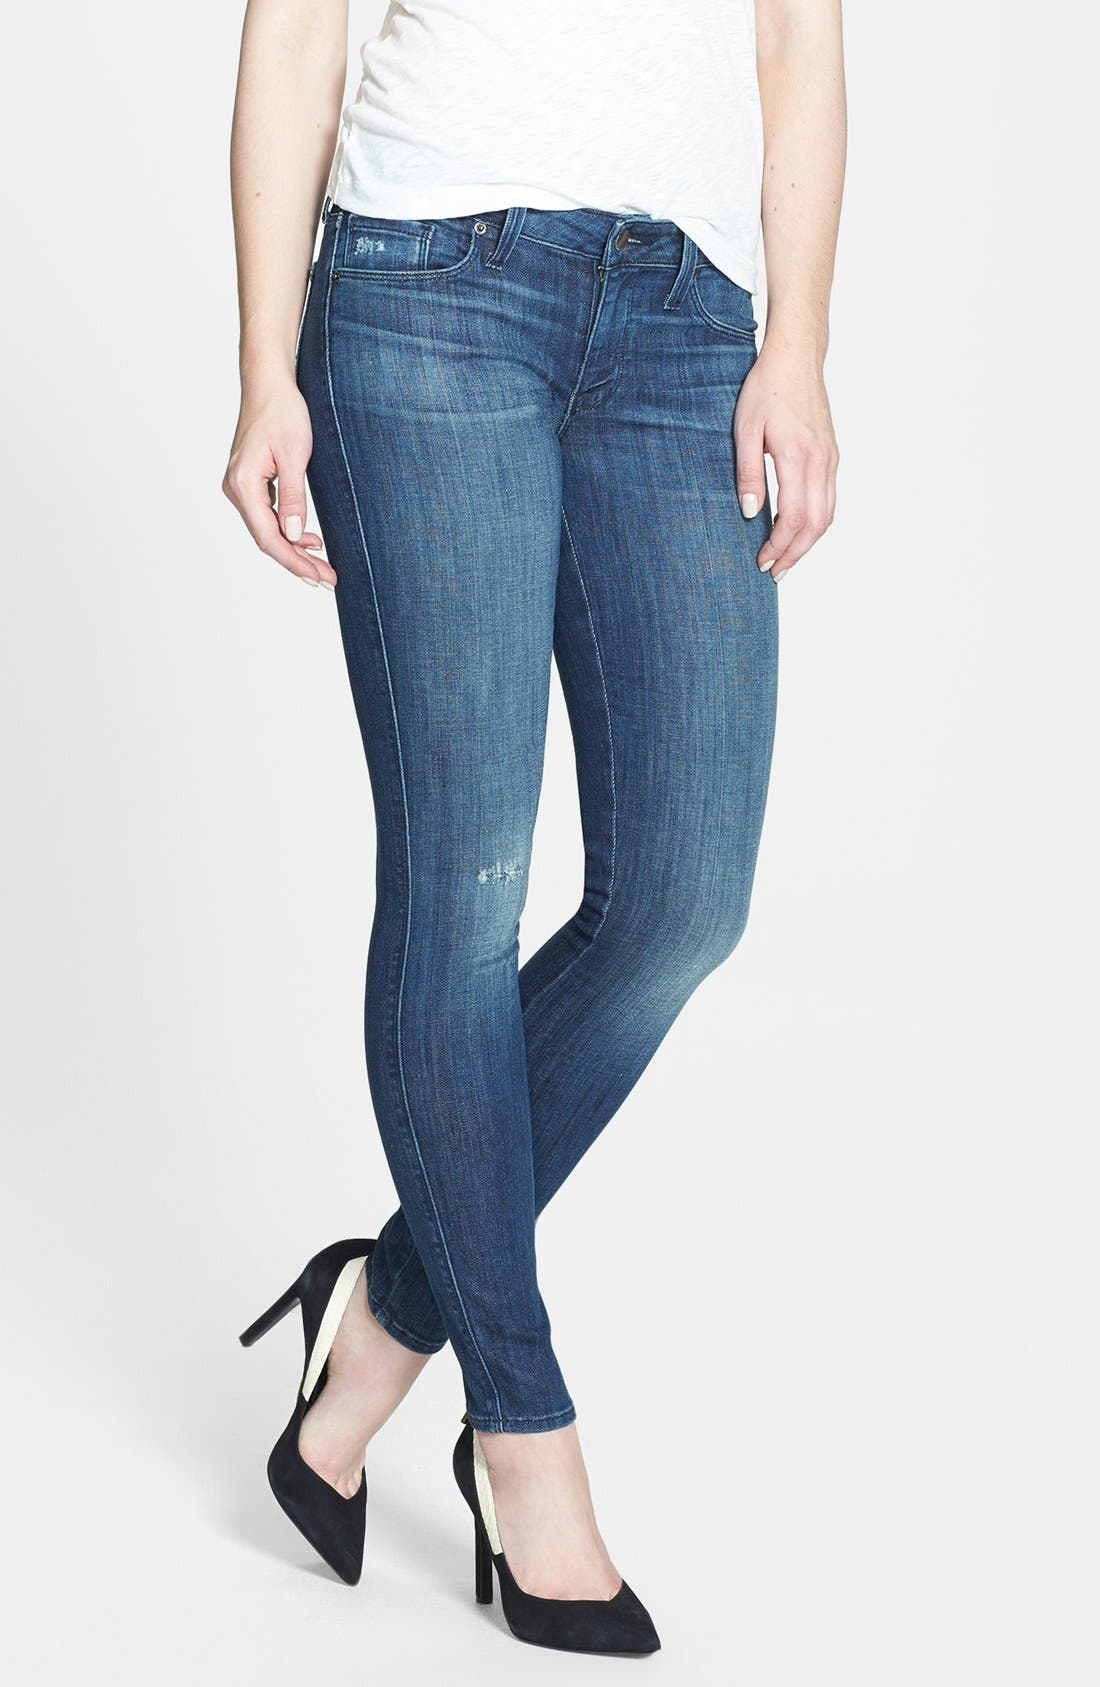 Alternate Image 1 Selected - Genetic 'Shya' Cigarette Skinny Jeans (Enigma)